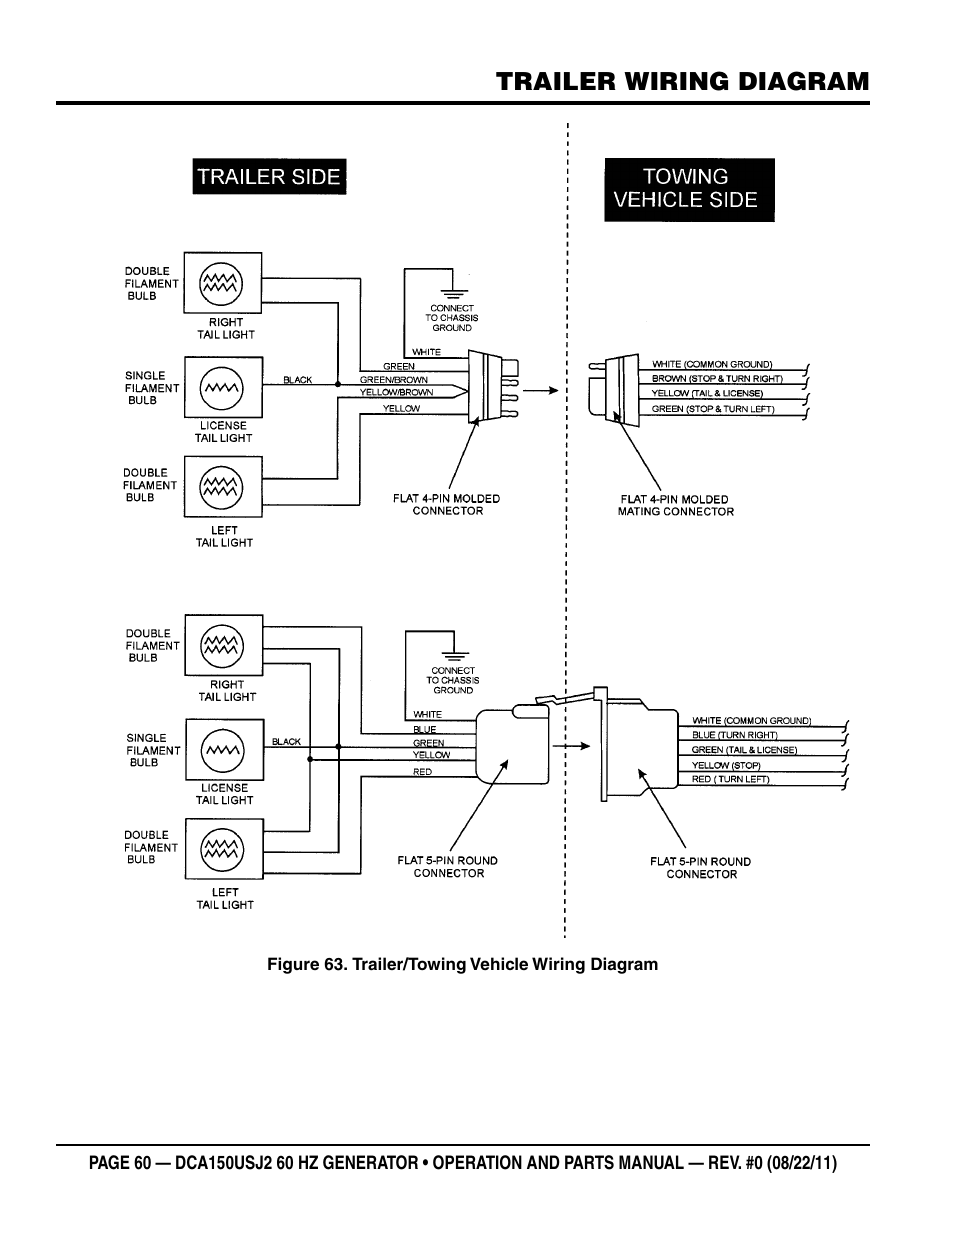 Trailer wiring diagram | Multiquip MQ Power Whisperwatt 60HZ ... on home generator diagram, generator building diagram, how does a microwave work diagram, dc armature winding diagram, rv trailer wire diagram, generator relay diagram, generator plug diagram, generator rotor diagram, generator schematic diagram, generator wiring connectors, automotive generator diagram, generator radiator diagram, circuit diagram, generator connection diagram, electric generator diagram, generator hook up diagram, generator solenoid diagram, generator exciter diagram, generator fuel system diagram, generator oil diagram,